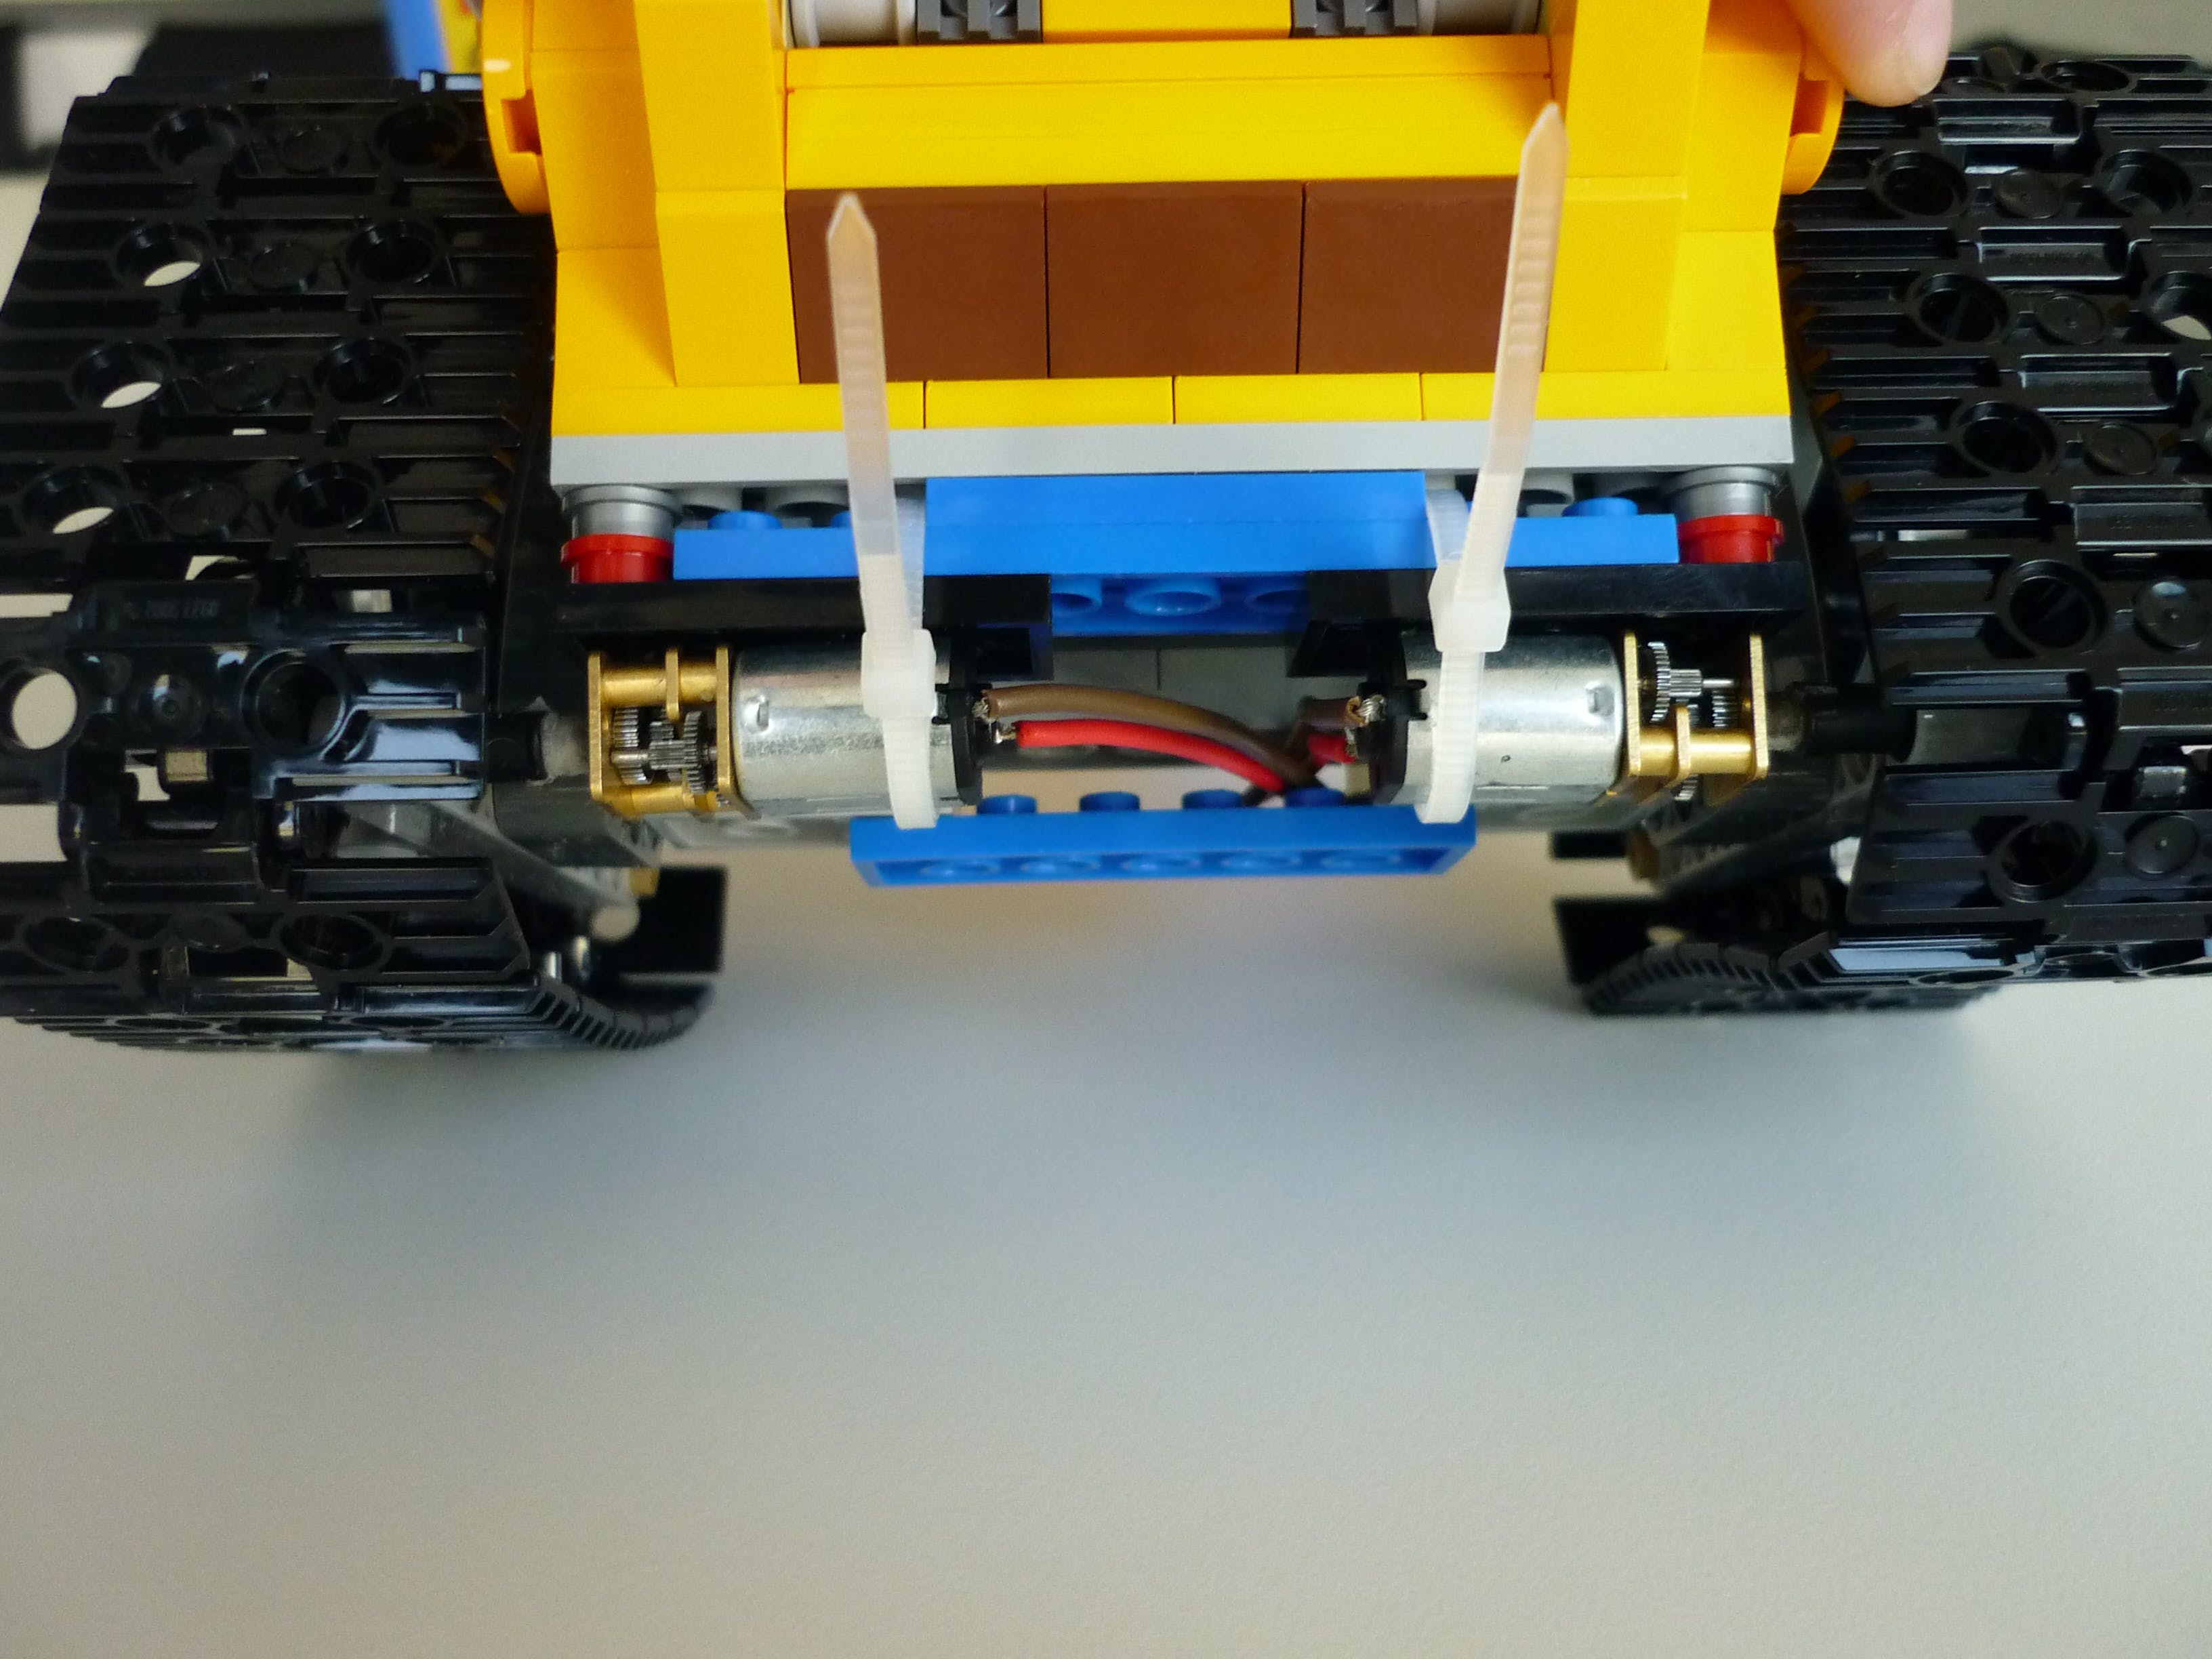 Attaching the motors was a bit tricky.